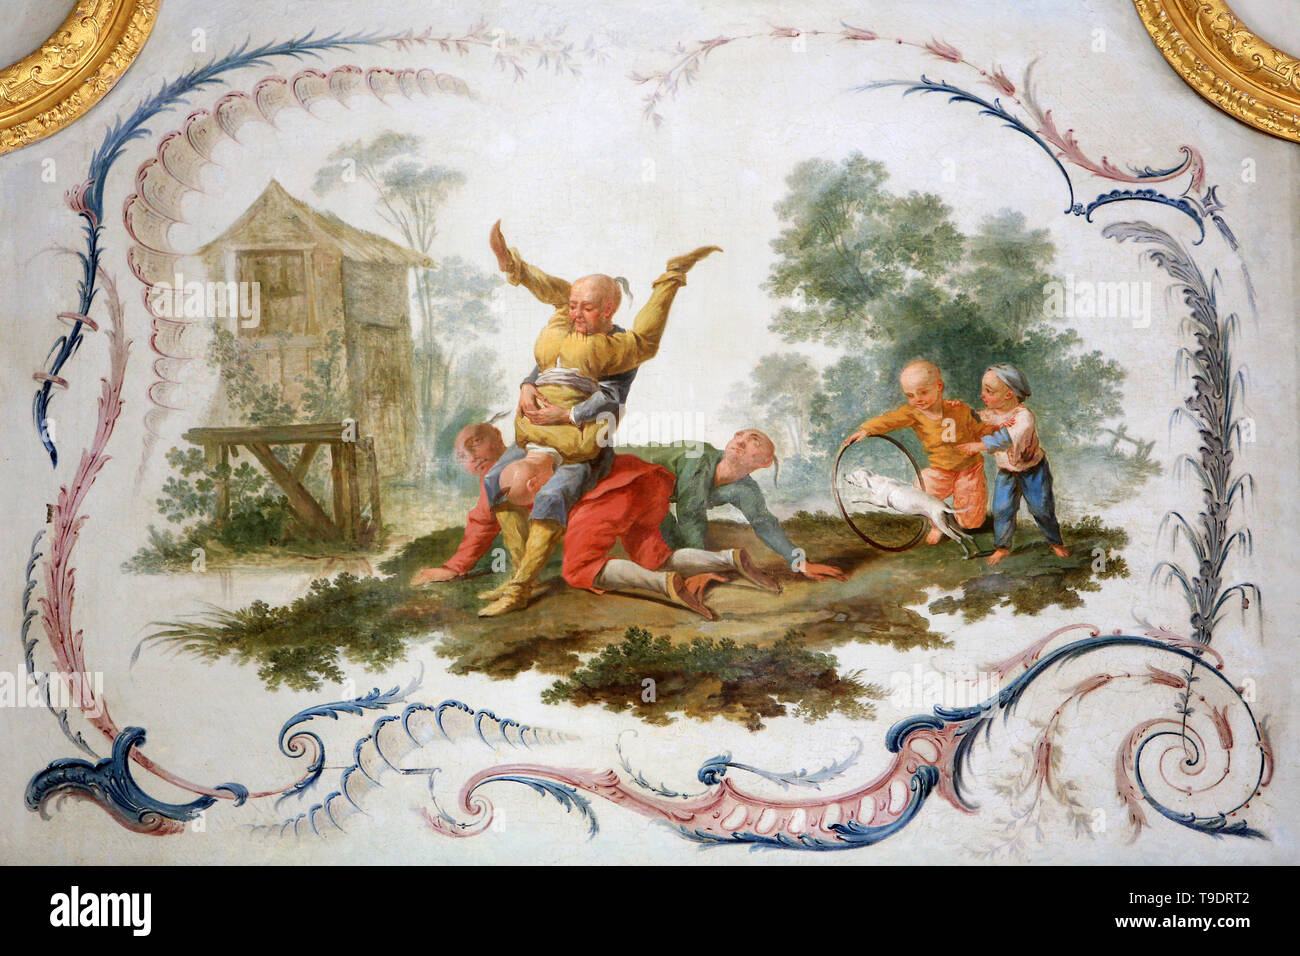 Salon Chinois Panel Painted By Christophe Huet 1747 Salon Chinois Castle Of